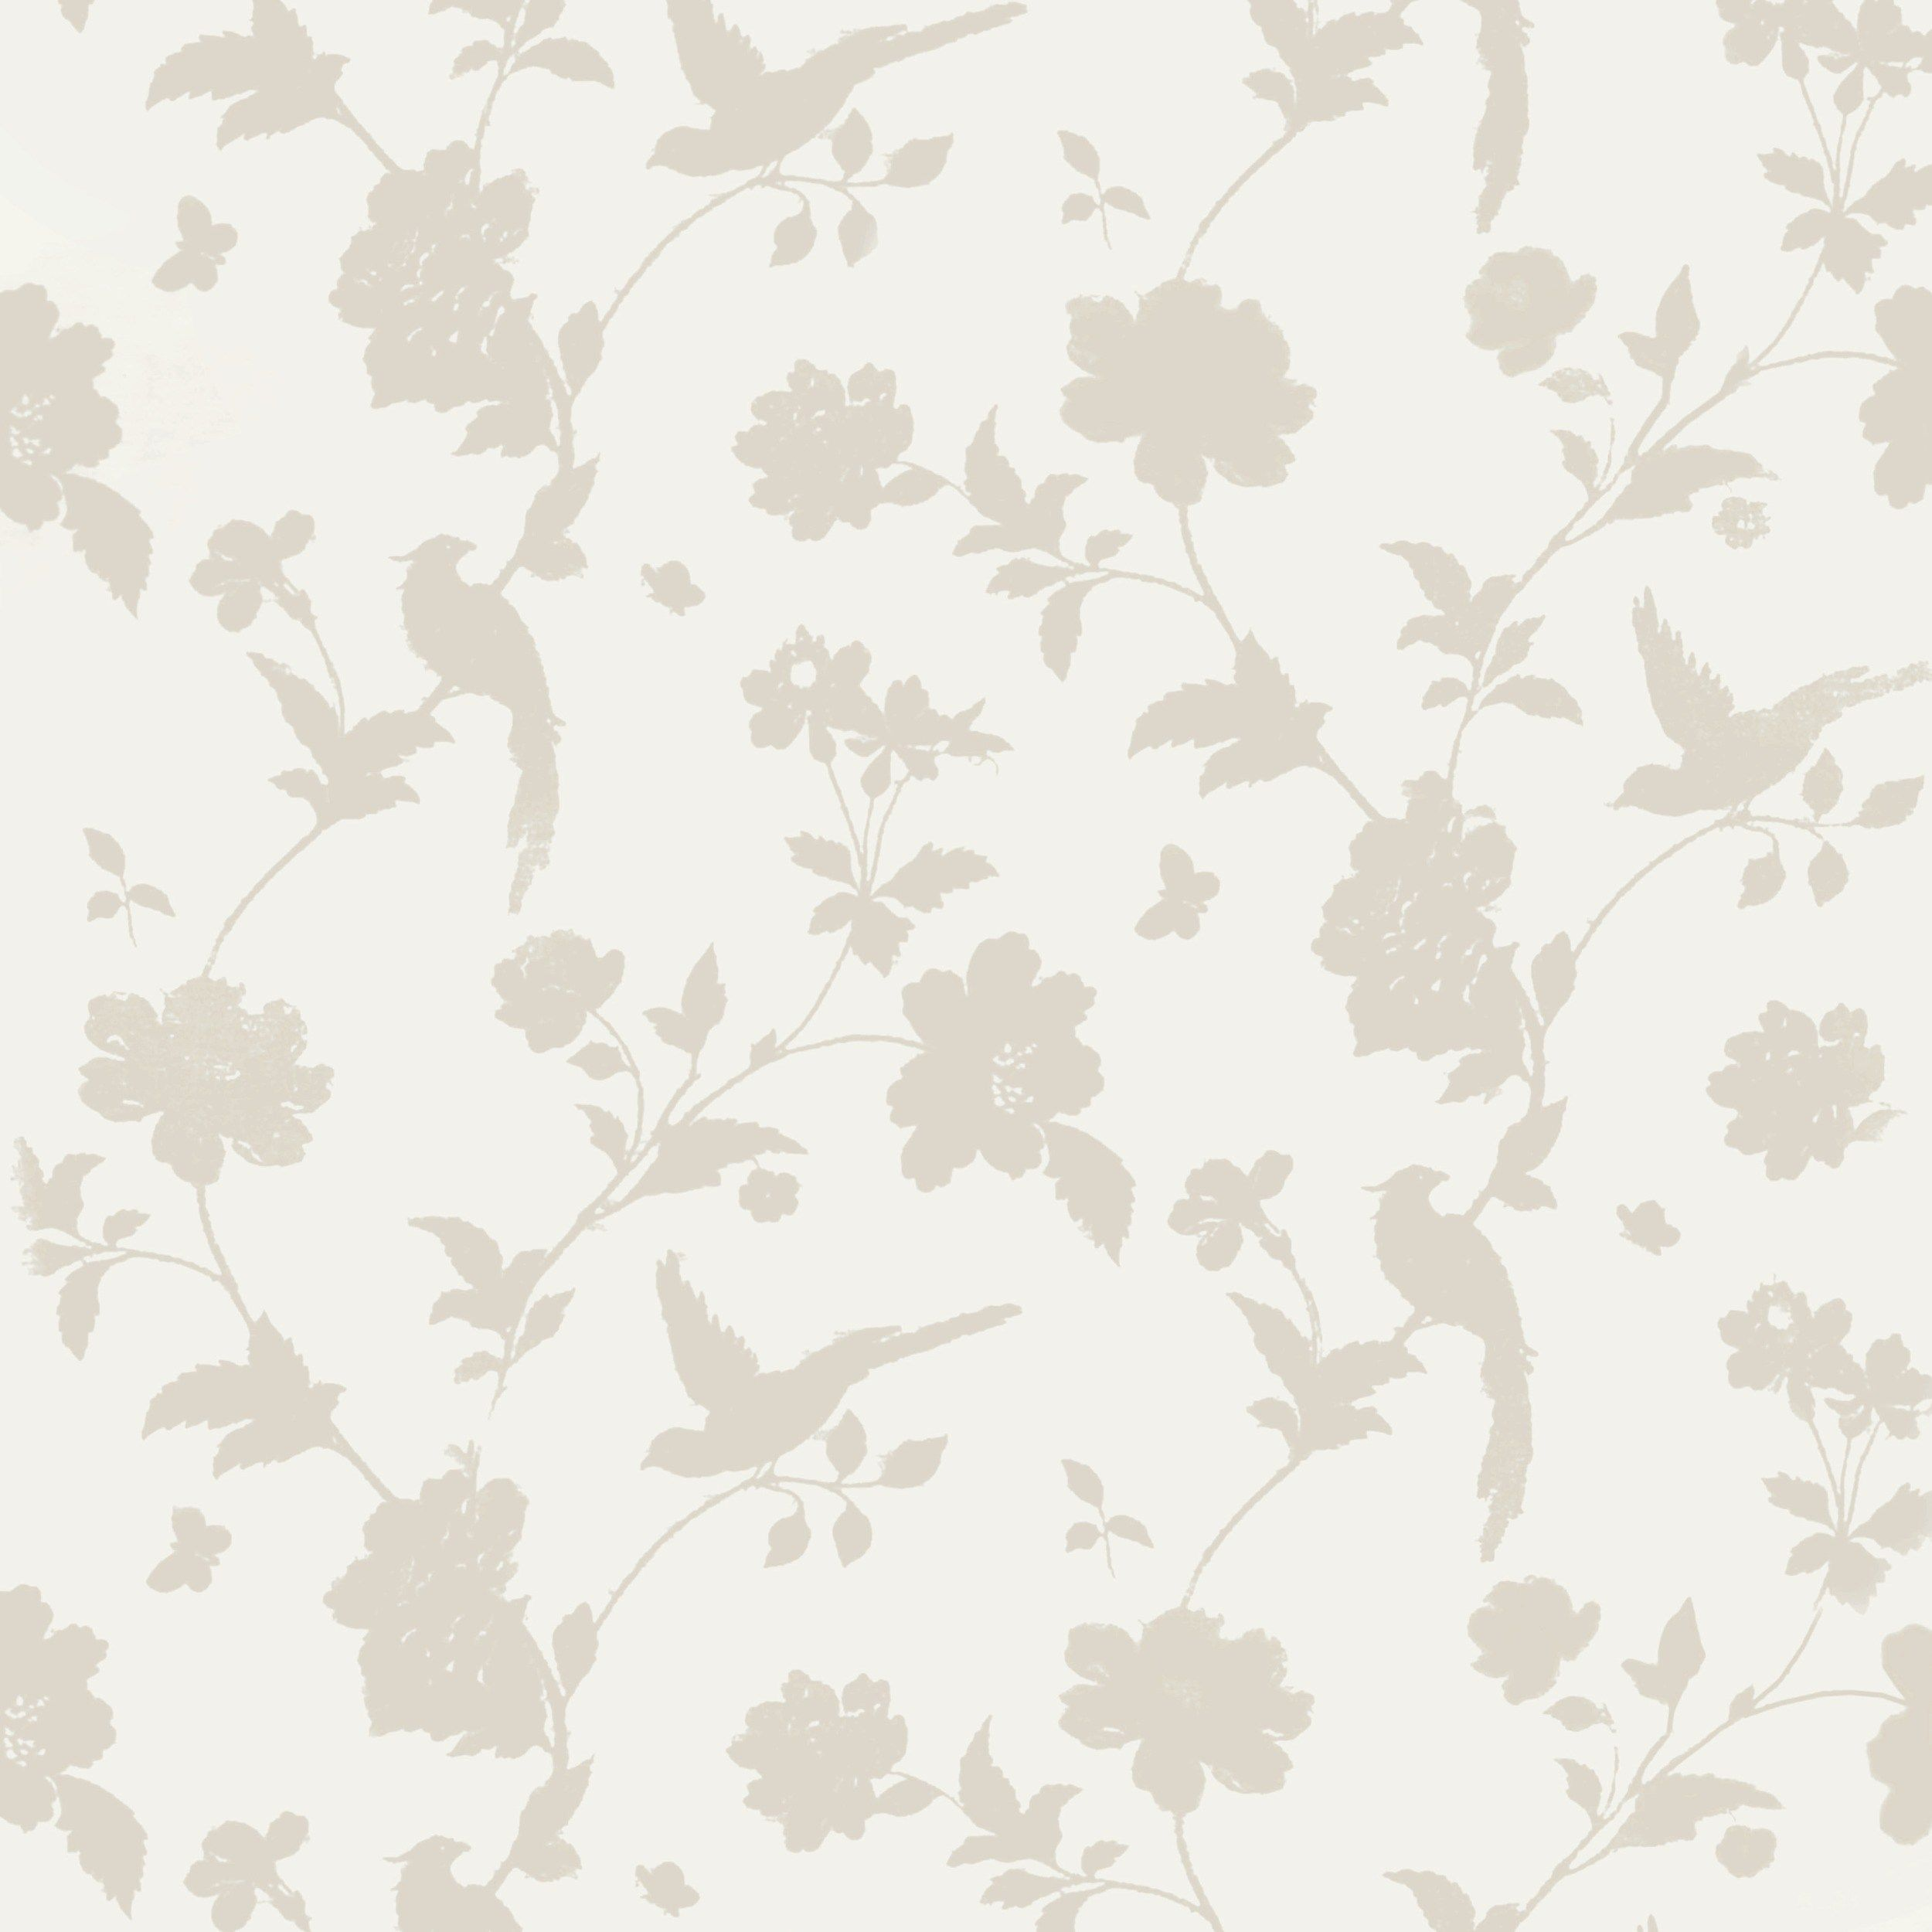 Laura Ashley Discontinued Wallpaper Borders Wallppapers Gallery